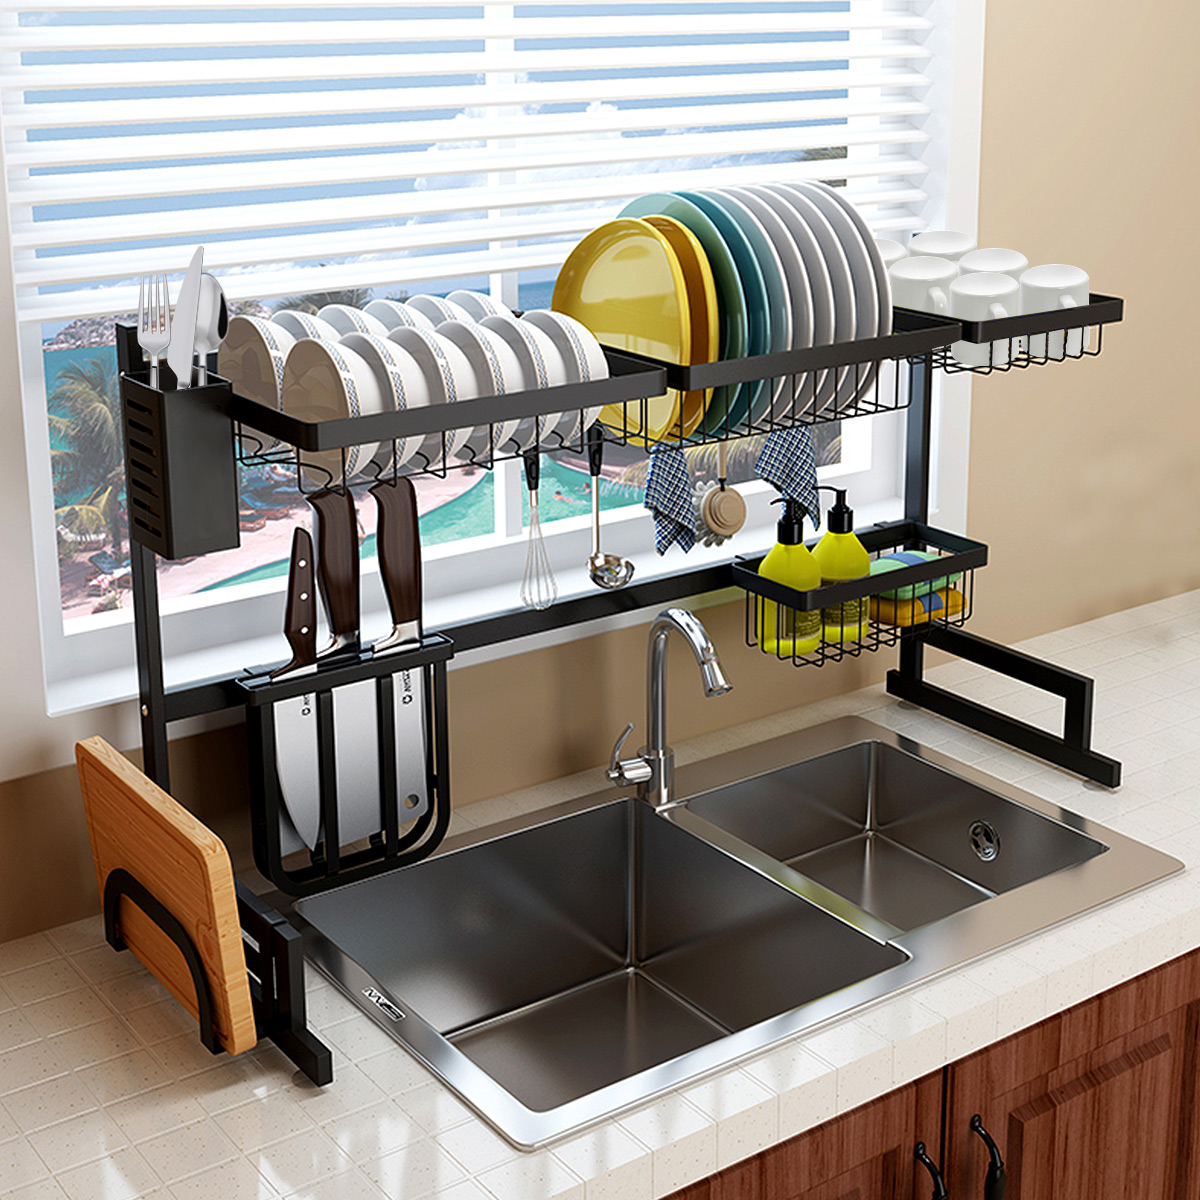 over the sink dish drying rack kitchen sink organizer dish rack stainless steel over the sink shelf storage rack w utensils holder hooks dish for